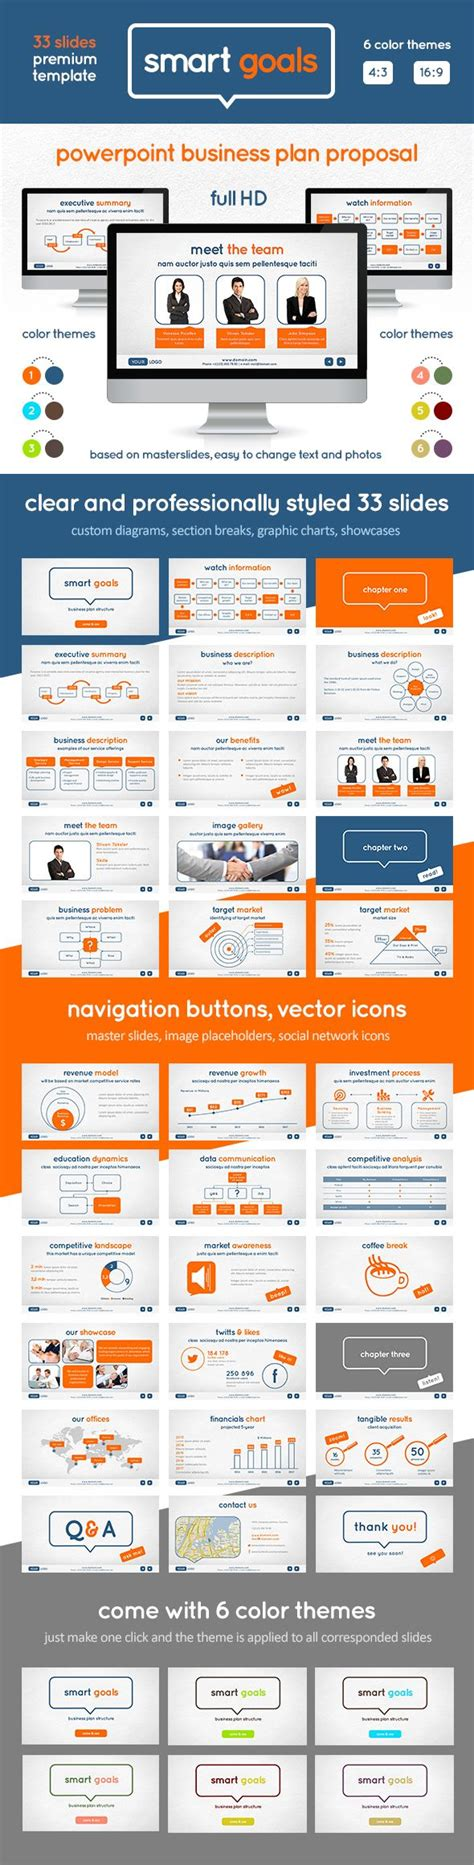 Free powerpoint templates for research proposal jpg 590x2322